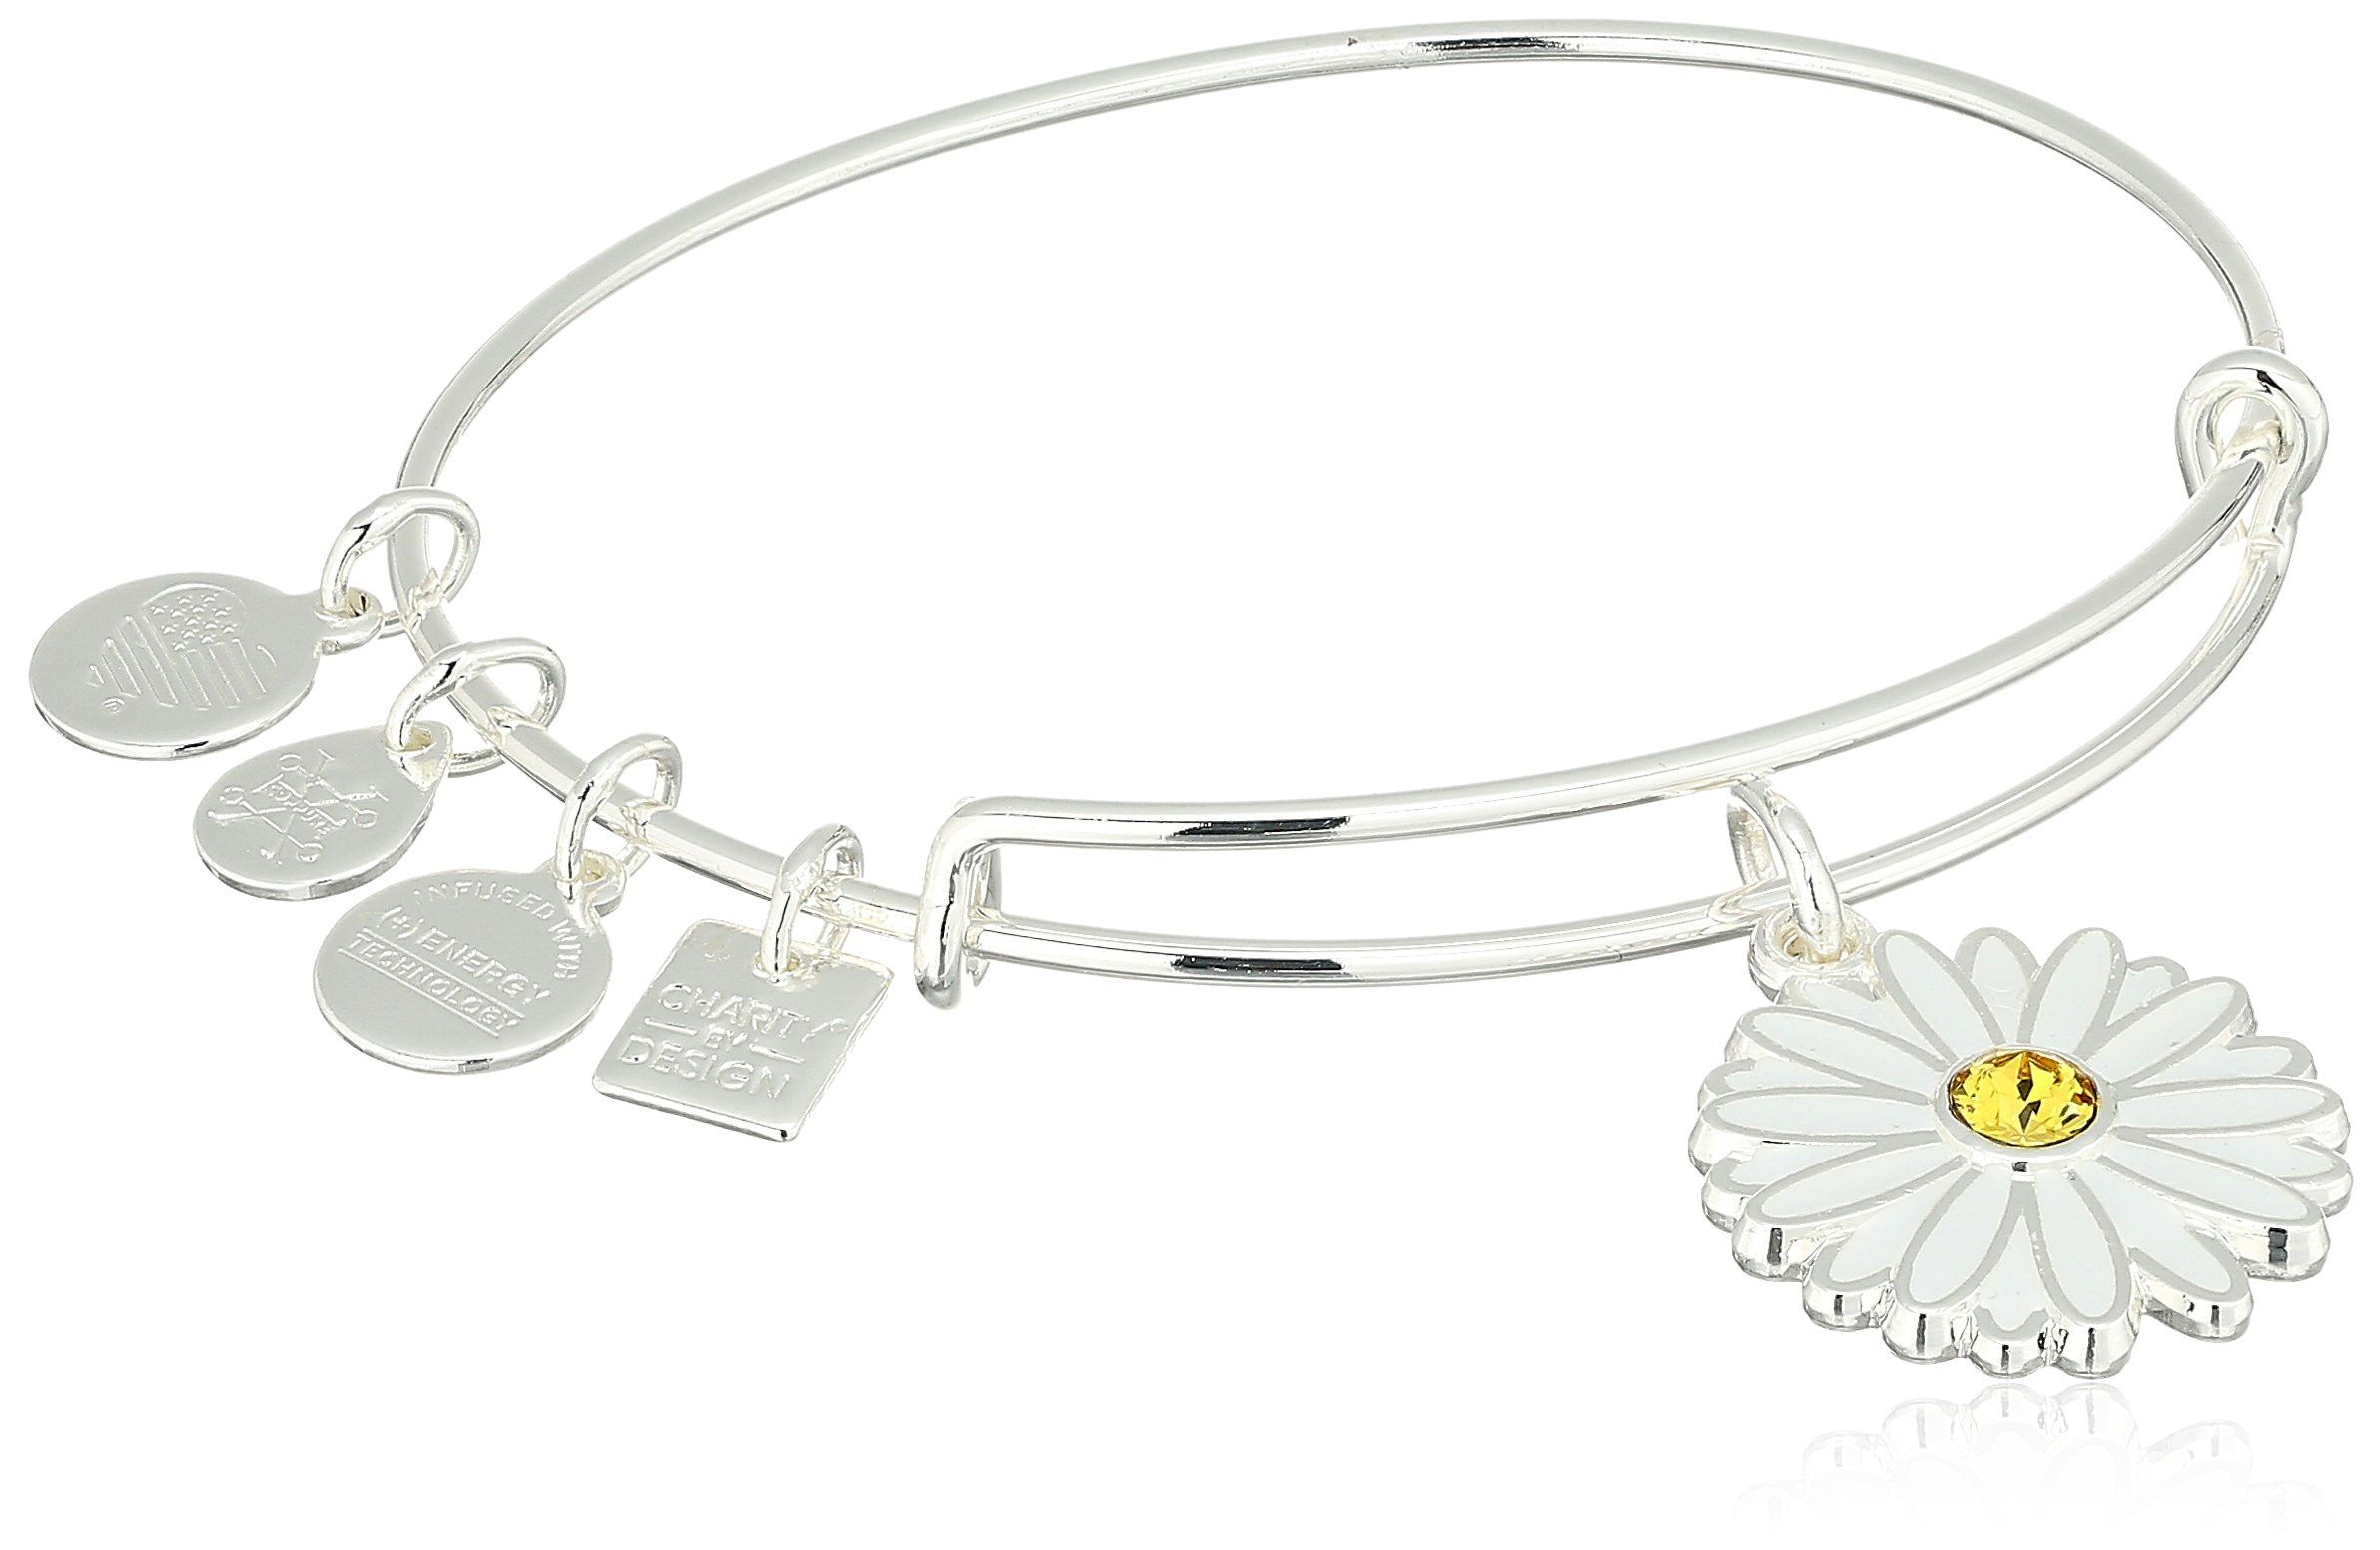 inspiration alex and p in new lowest s flight brand ani charity by bangle design price bracelet